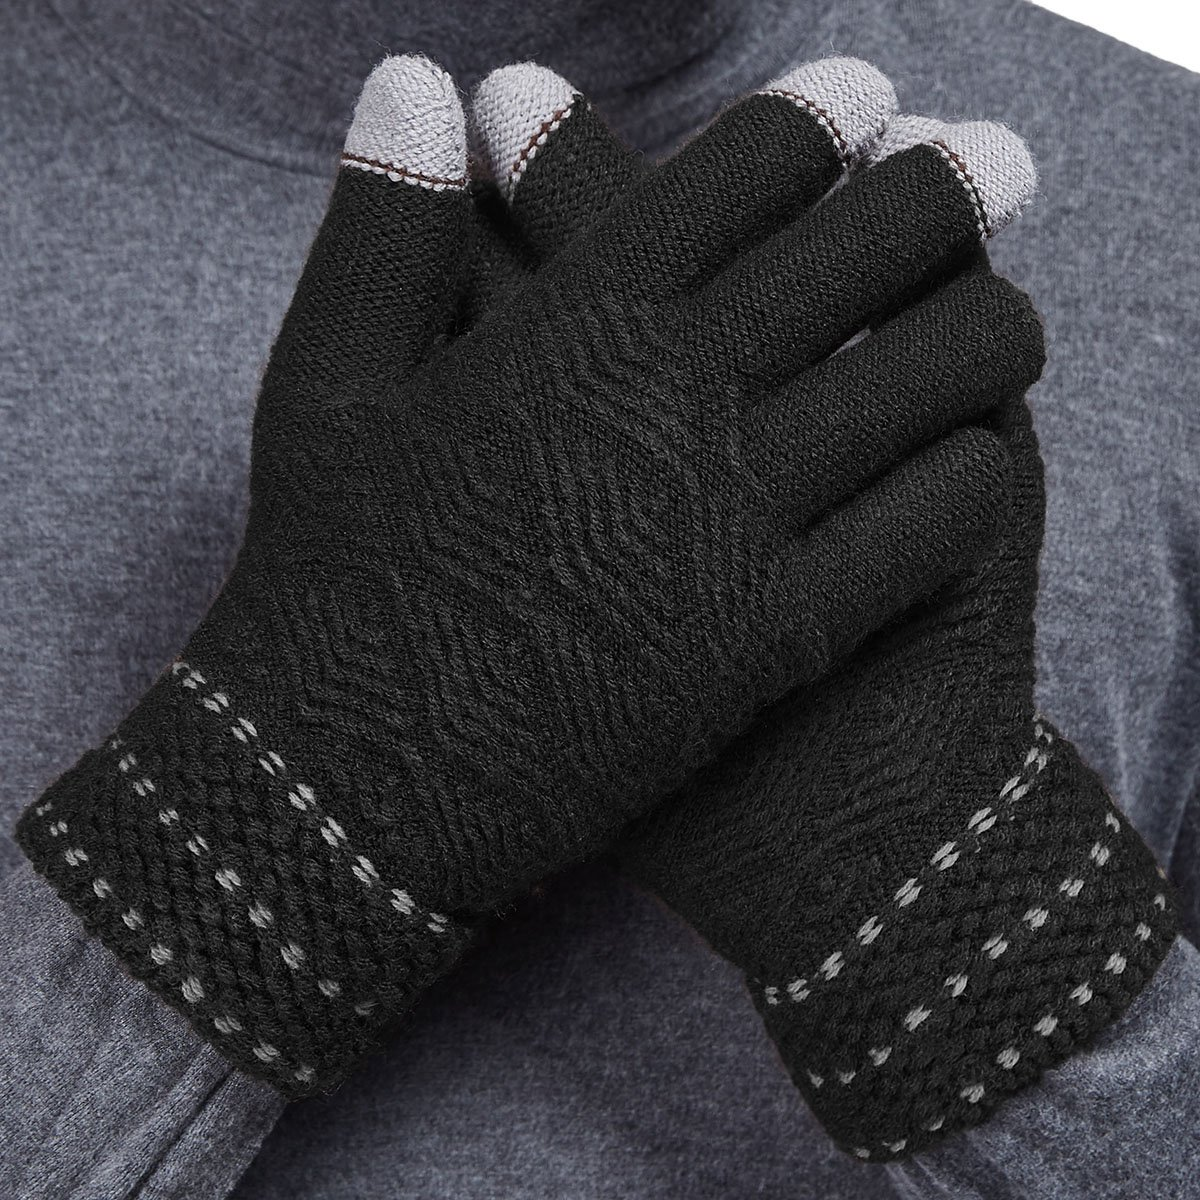 LETHMIK Winter Touchscreen Knit Gloves Mens Thick Texting Gloves with Warm Wool Lining Black